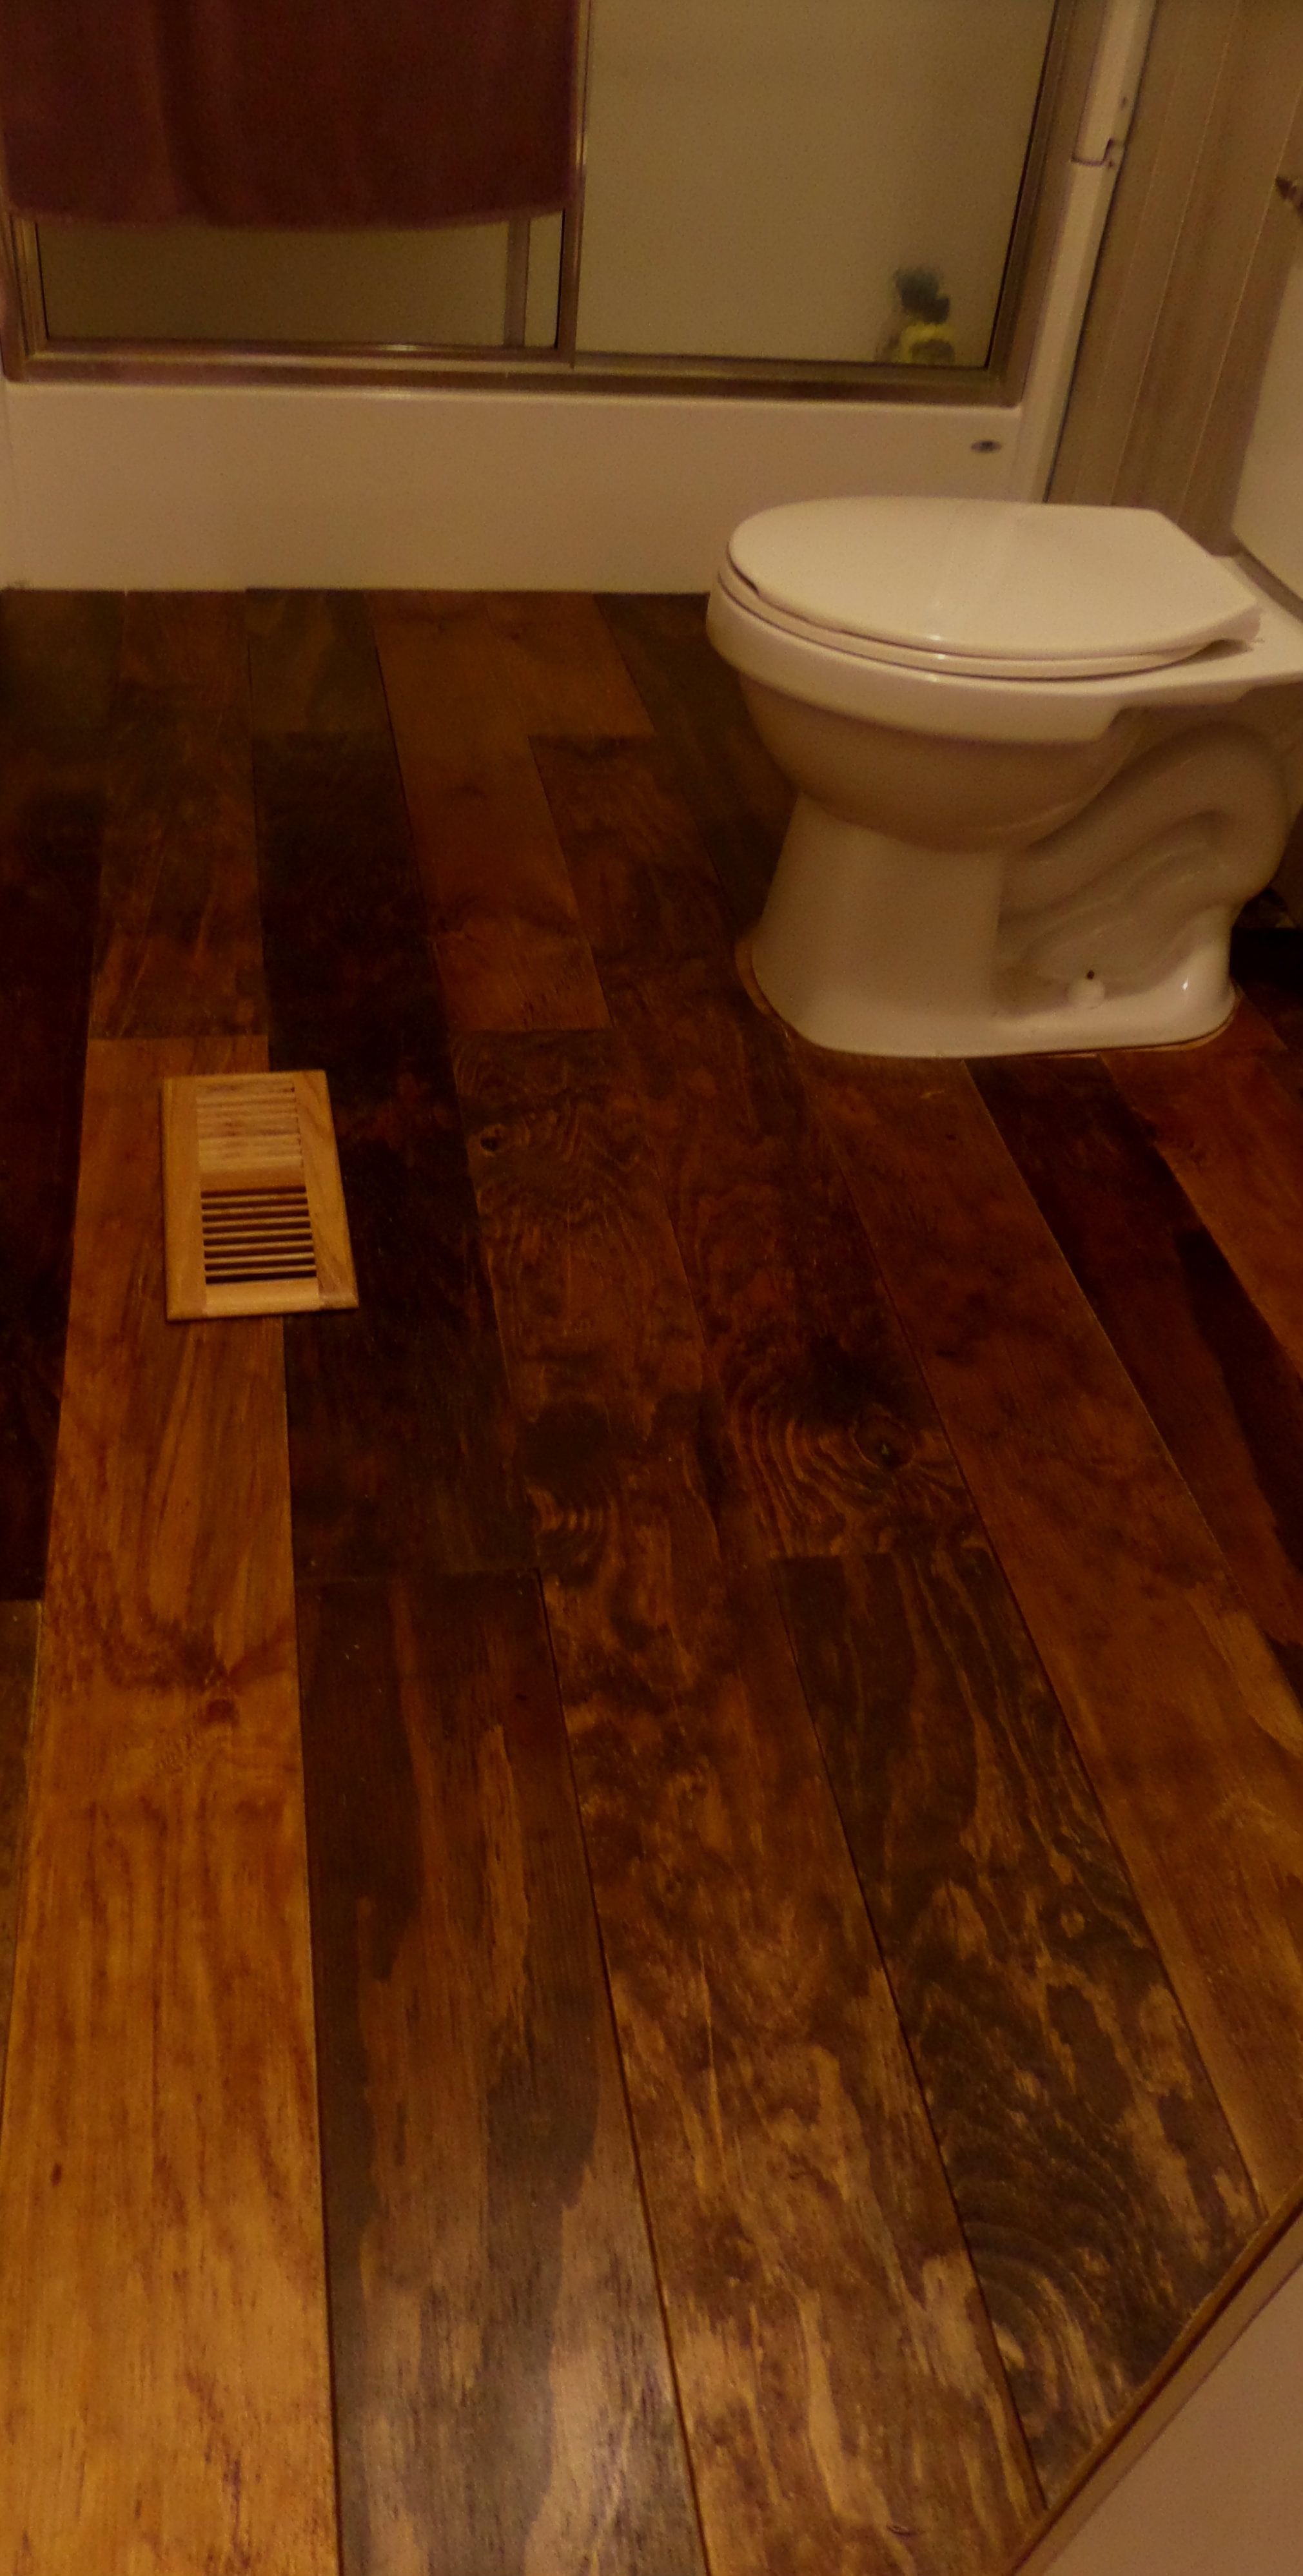 The Diy Wood Plank Flooring That Hubby And I Put In The Bathroom We Will Be Doing This In Most Of The House We Ripped 1 4 Plywood In 6 Strips S Diy Flooring